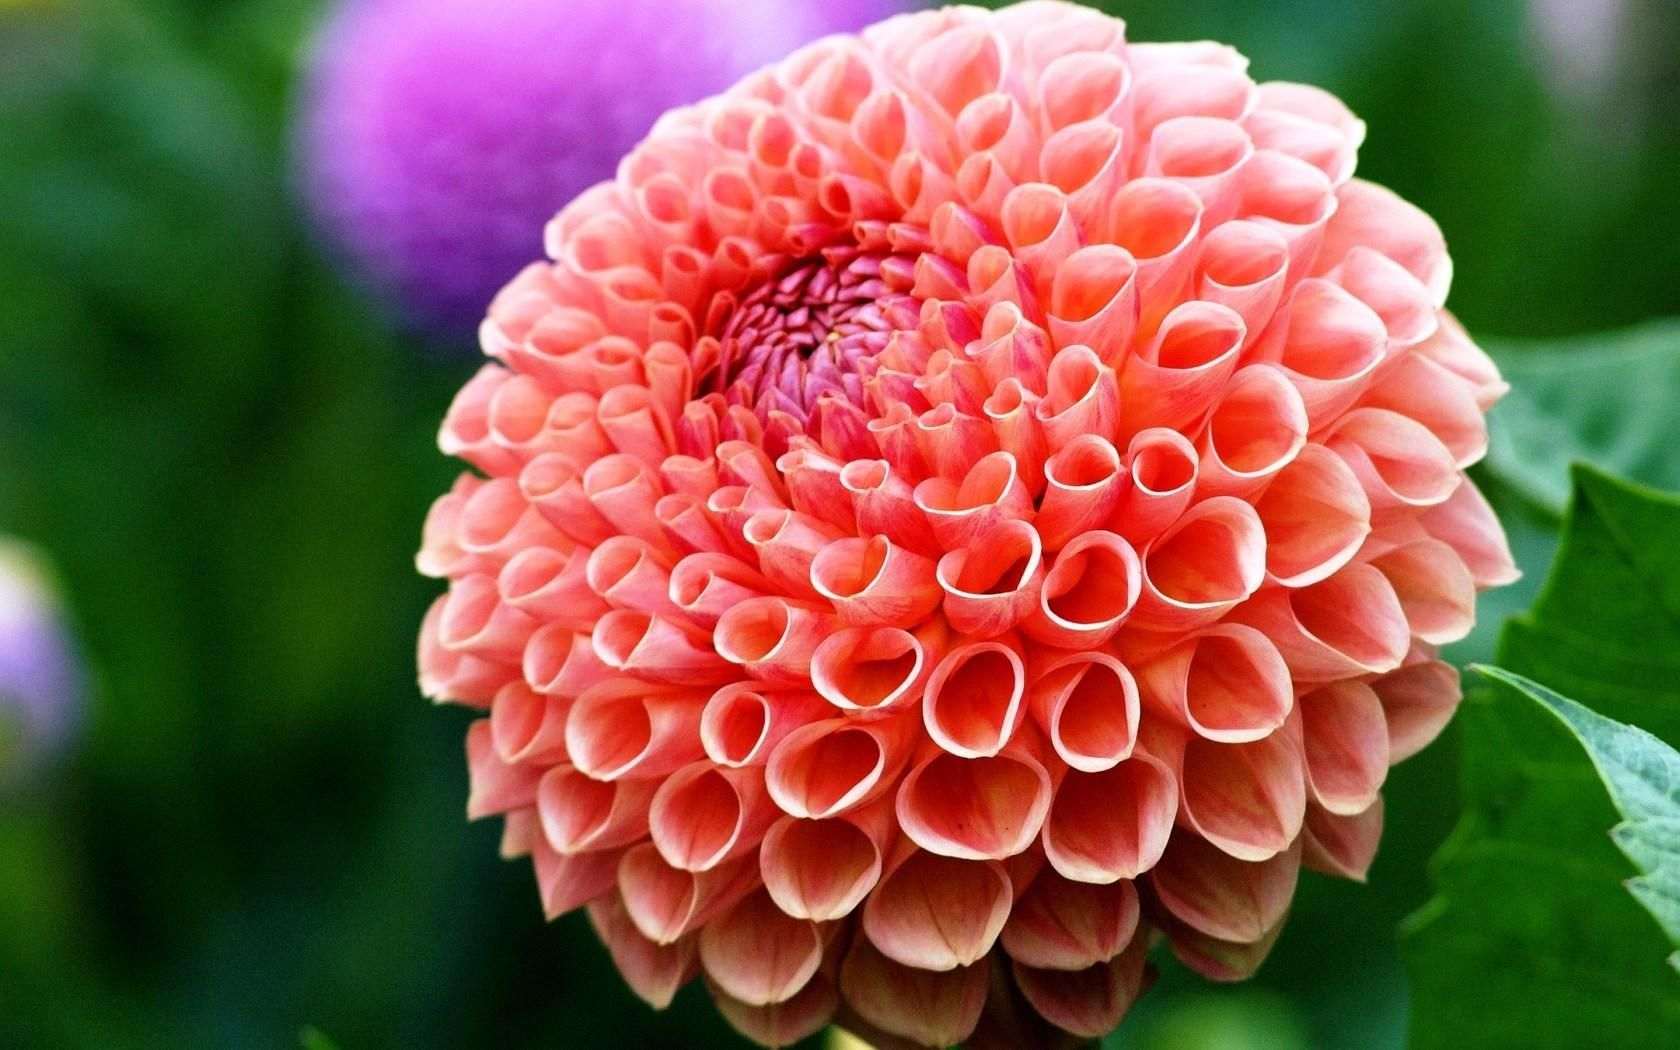 Dahlia Mexico National Flower Latest Hd Wallpapers Flower Pot Garden Flower Beauty Dahlia Flower